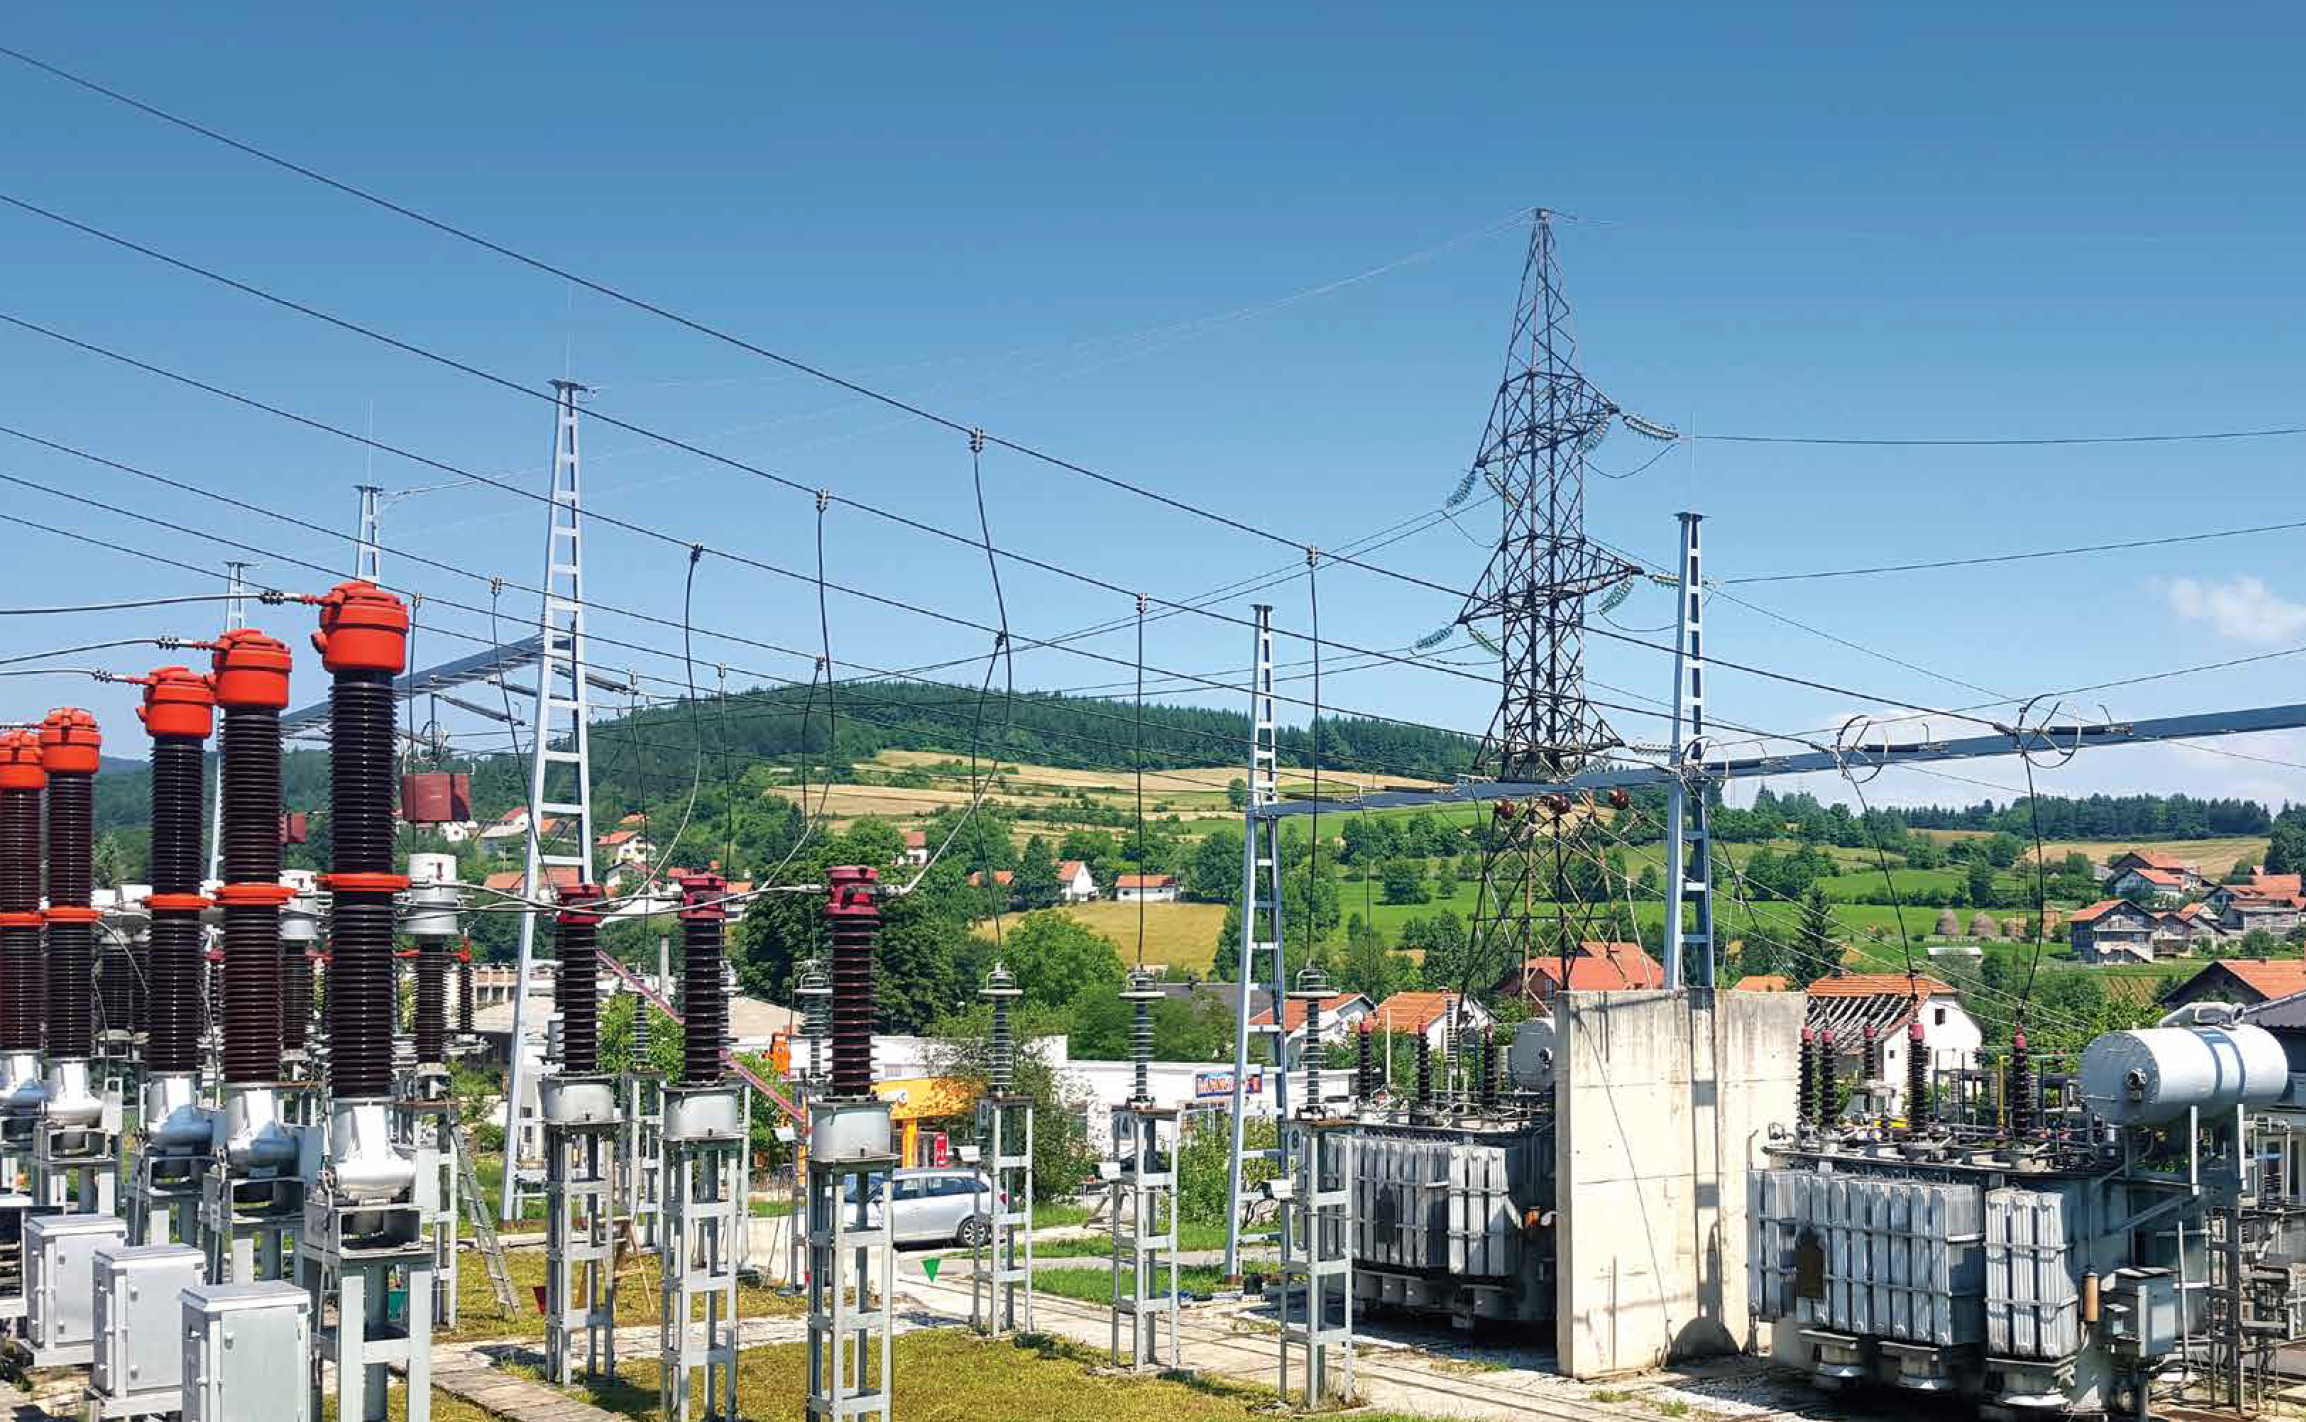 Bosnian Utility Implemented Program to Monitor Condition of Station Arresters arrester Implementing a Program to Monitor Condition of Station Arresters Screen Shot 2016 12 19 at 09